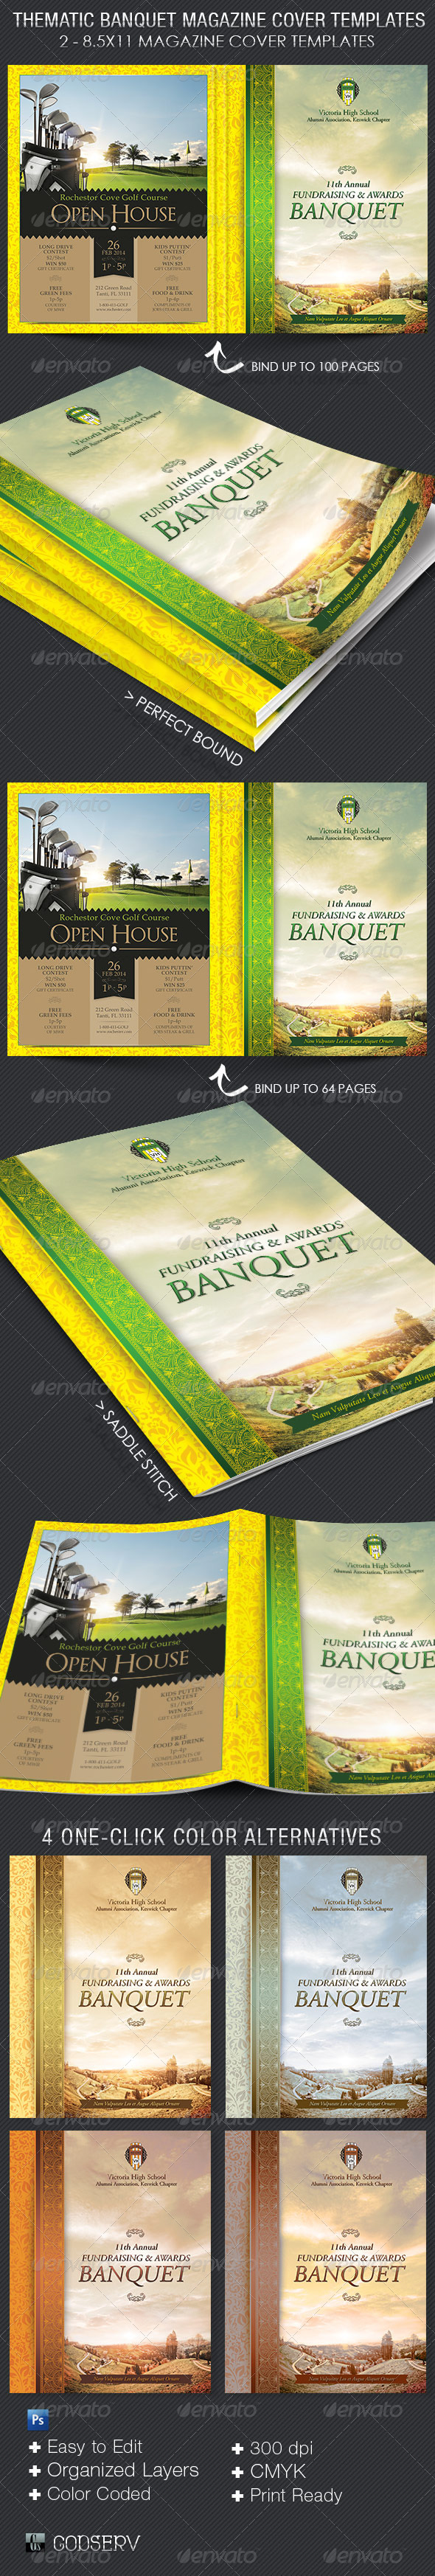 GraphicRiver Thematic Banquet Magazine Cover Template 5921013